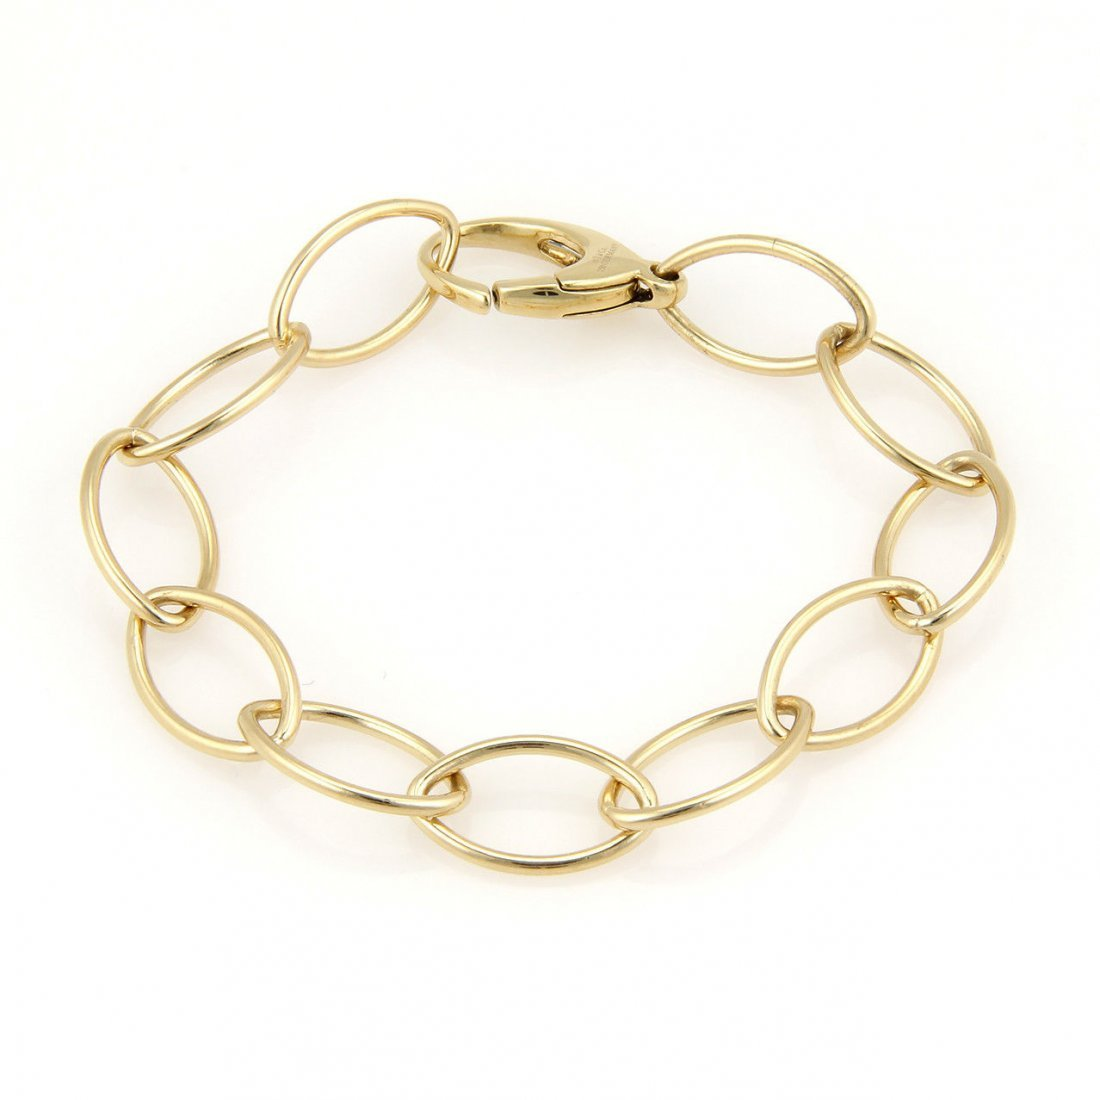 Tiffany & Co. Germany 18K Yellow Gold Oval Chain Link